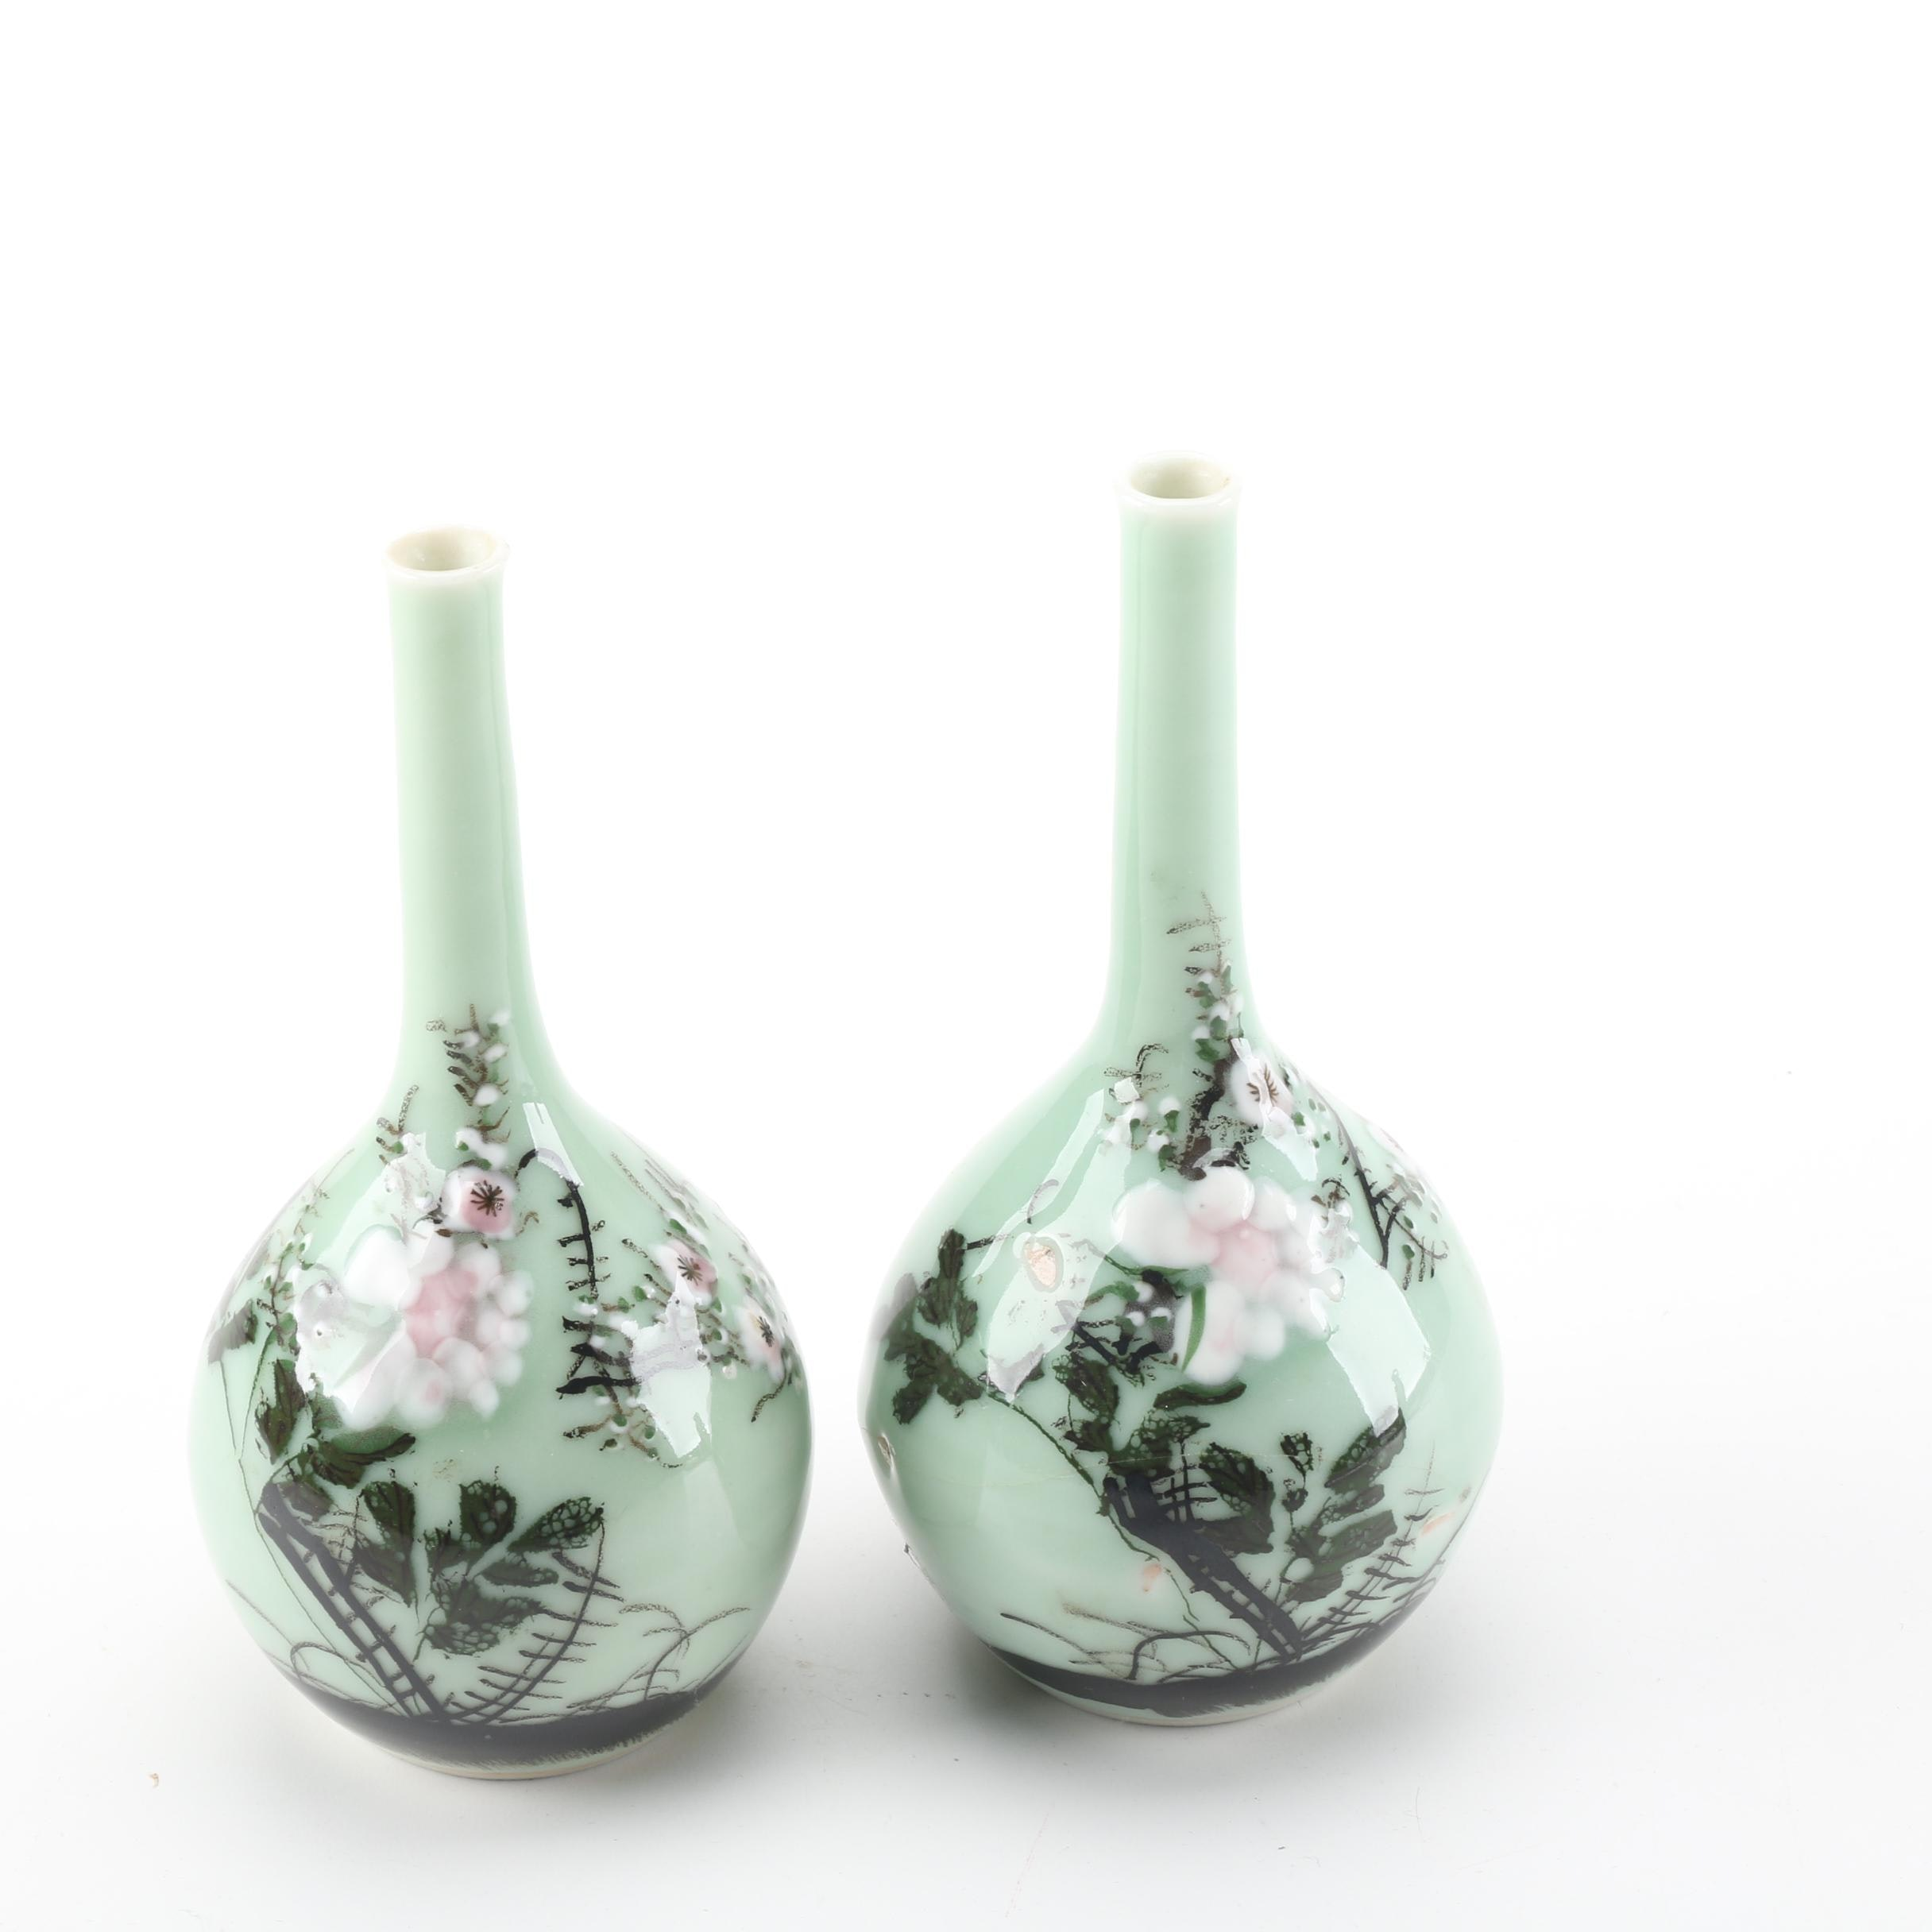 East Asian Style Celadon Bud Vases With Hand-Painted Floral Design